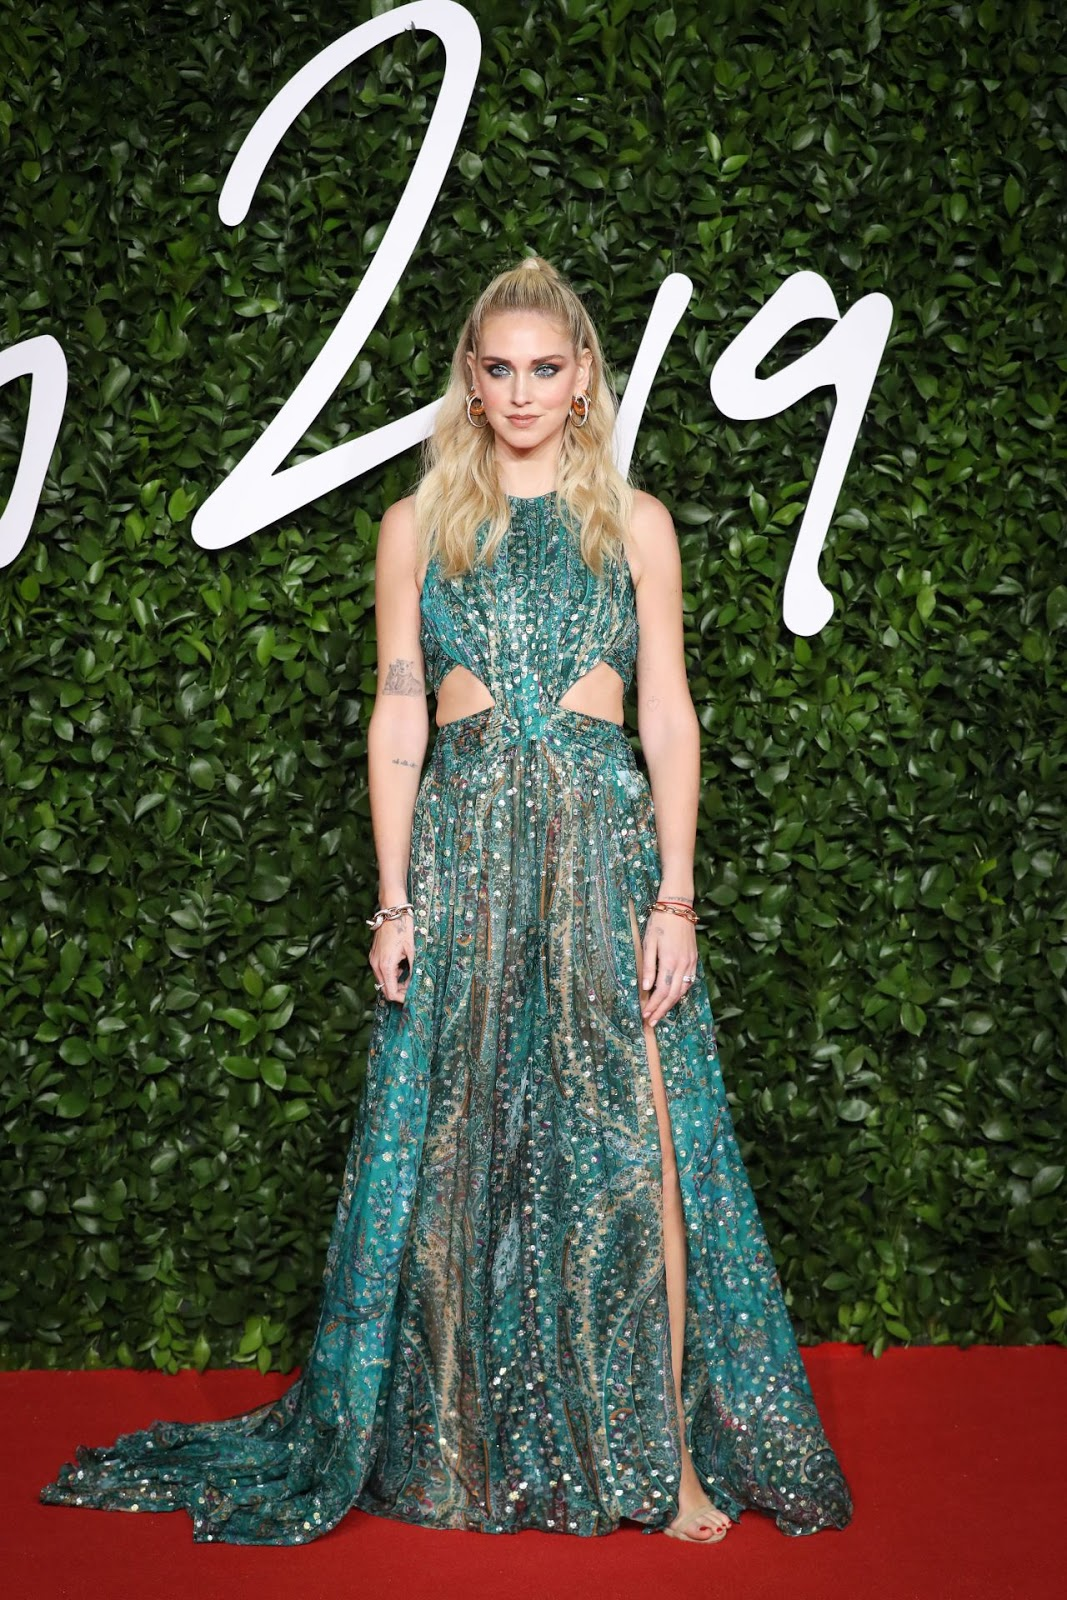 chiara-ferragni-fashion-awards-2019-red-carpet-in-london-0